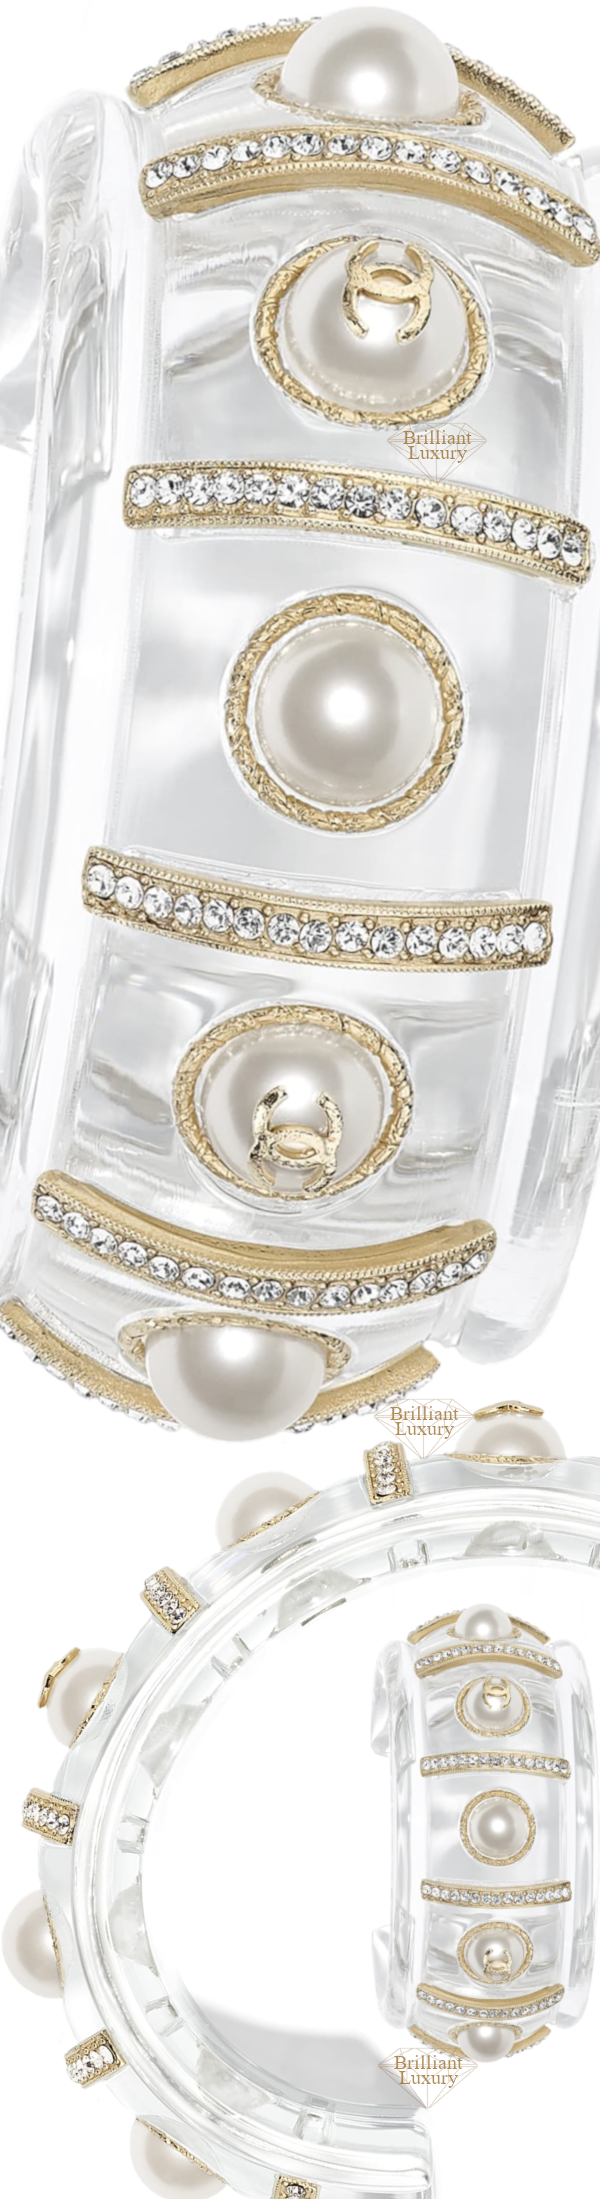 CHANEL Transparent Pearly White Cuff #jewelry